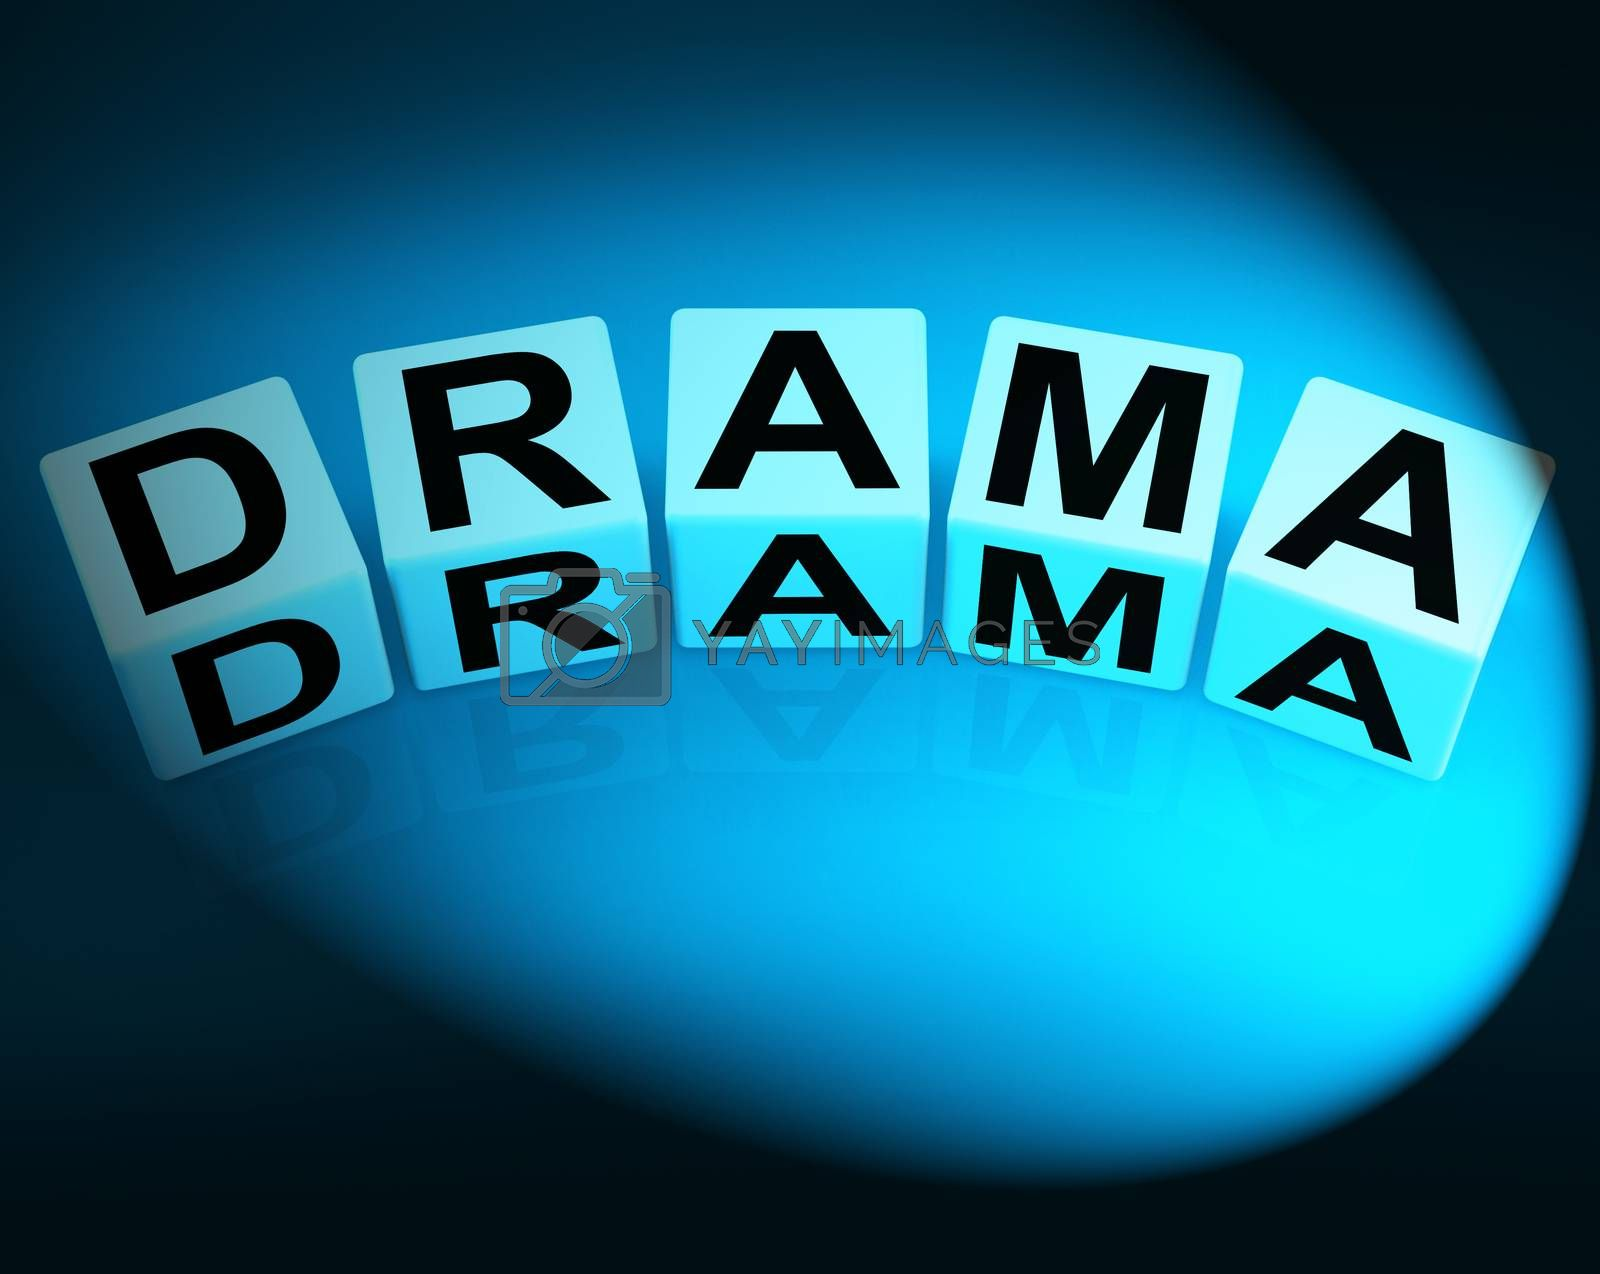 Drama Dice Indicate Dramatic Theater or Emotional Feelings by stuartmiles